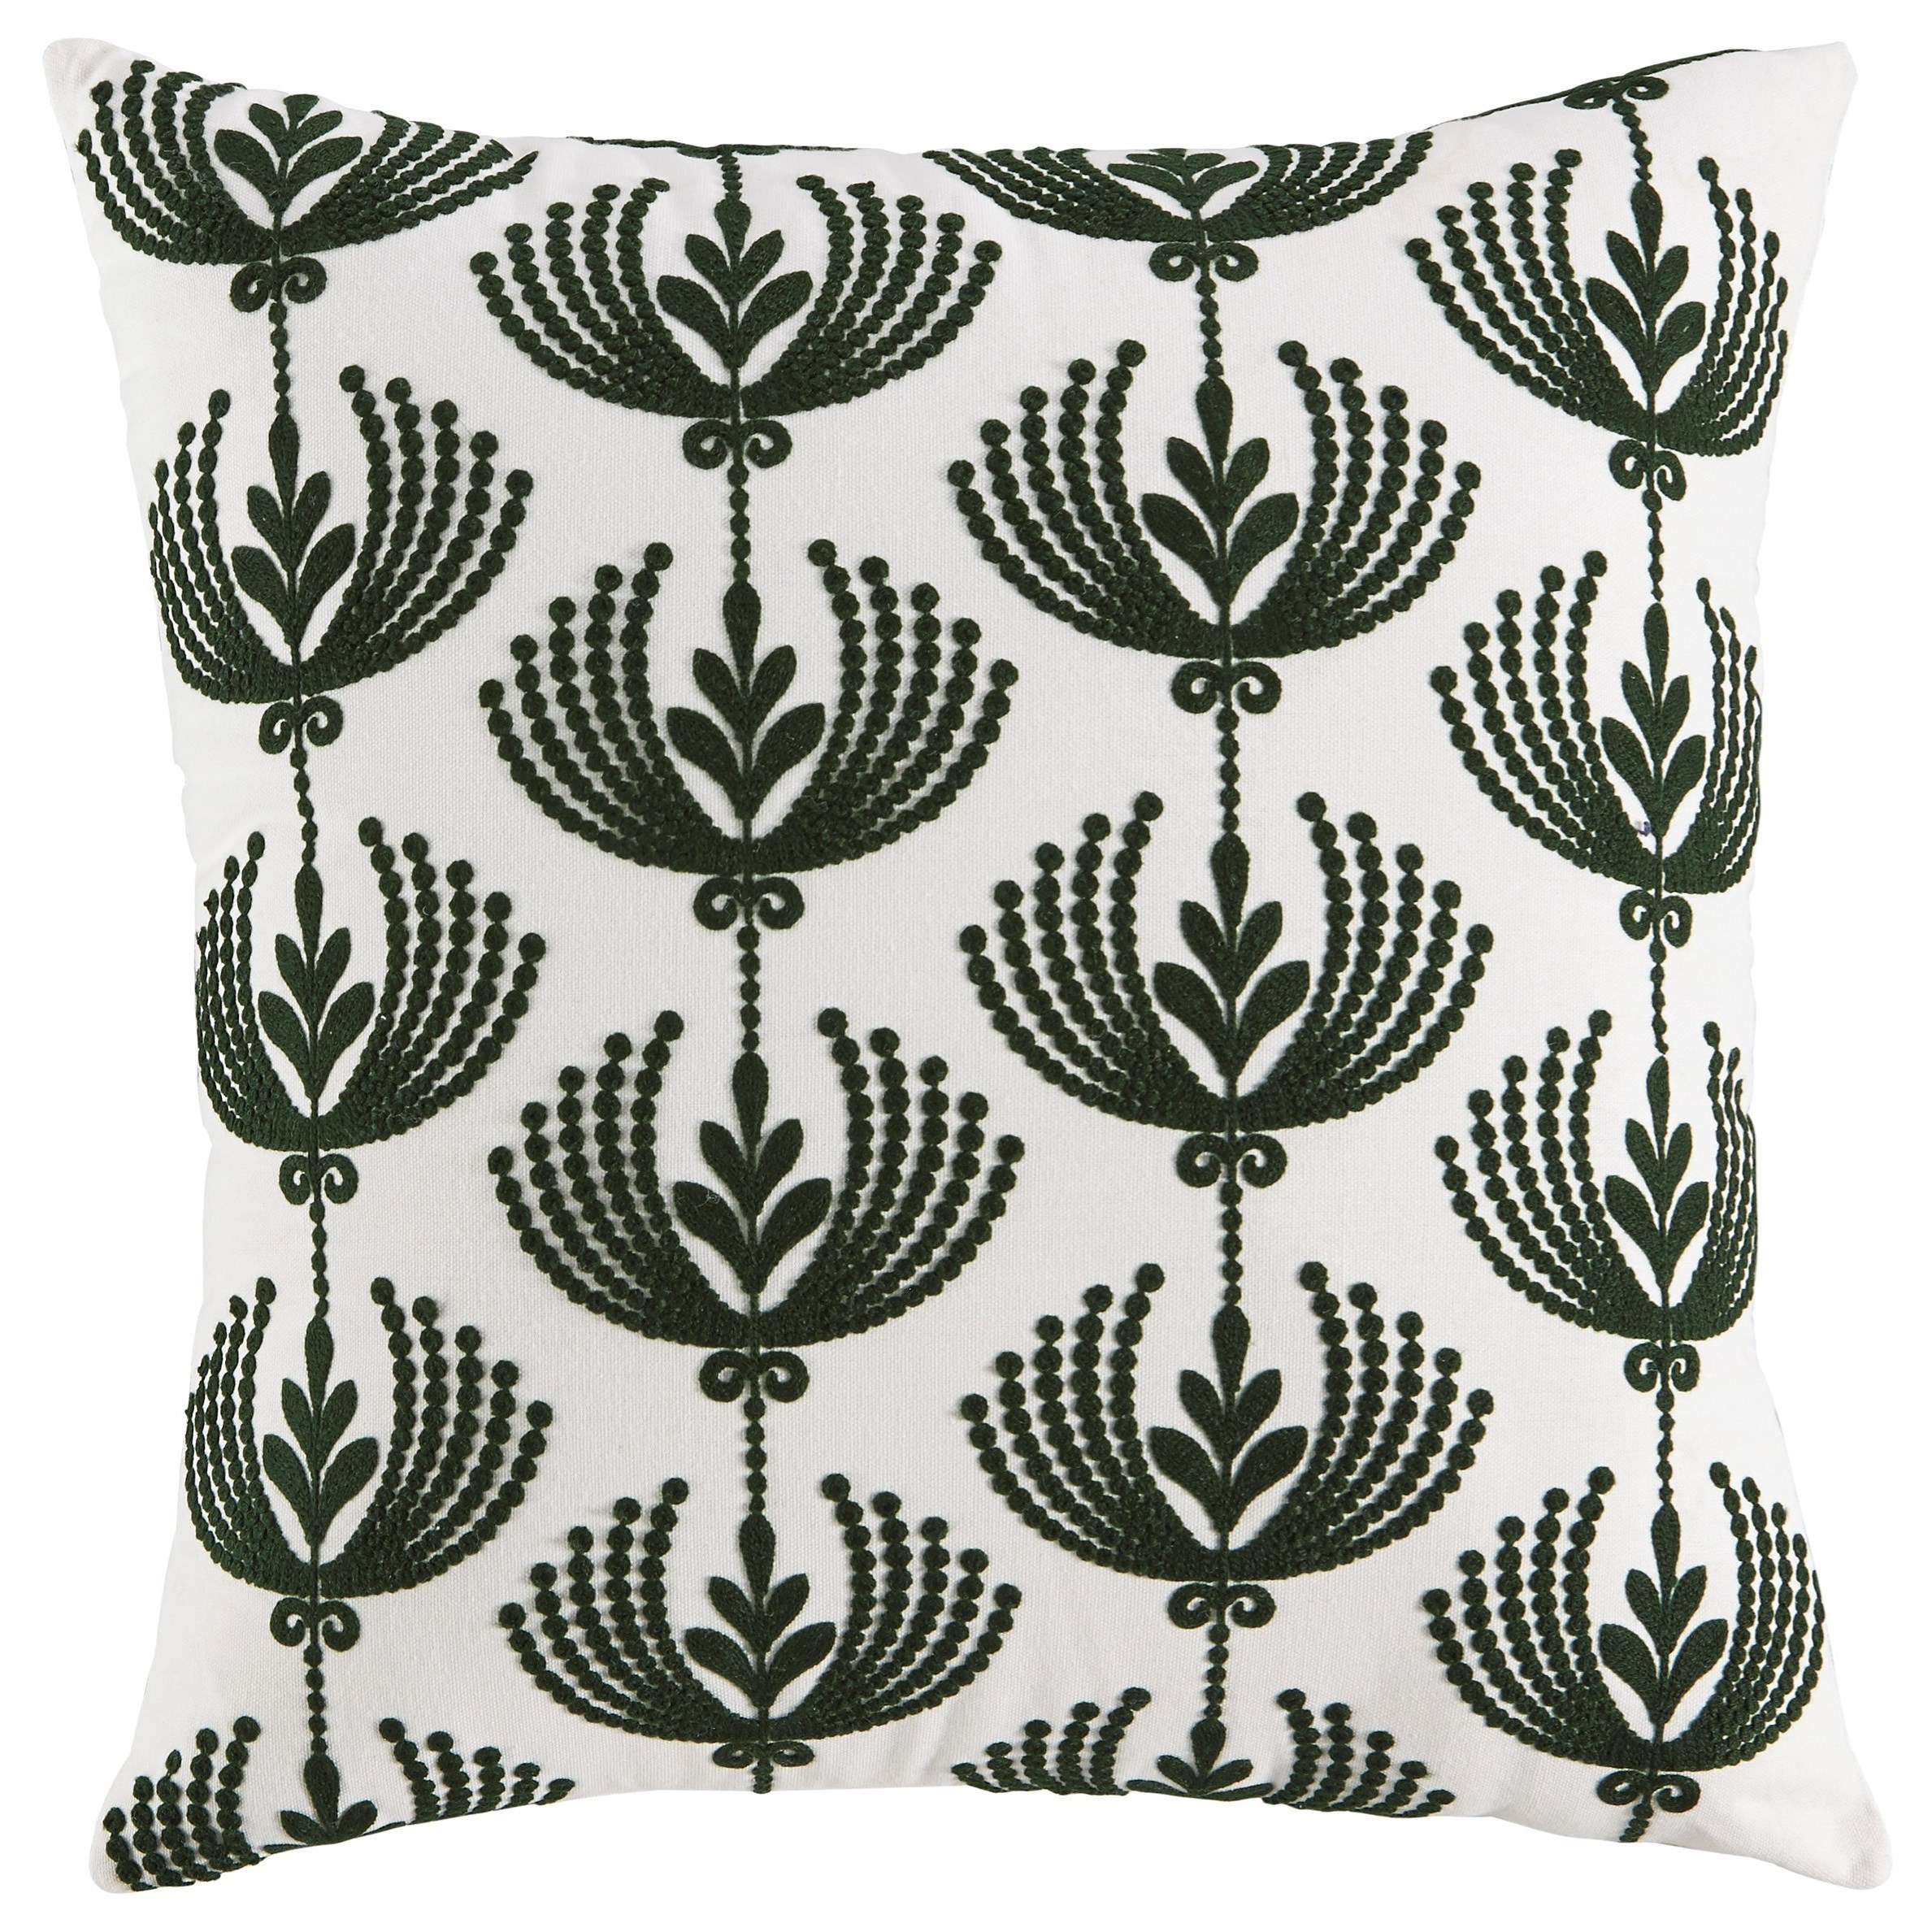 Pillows Dowden Cream/Emerald Pillow by Signature Design by Ashley at Northeast Factory Direct